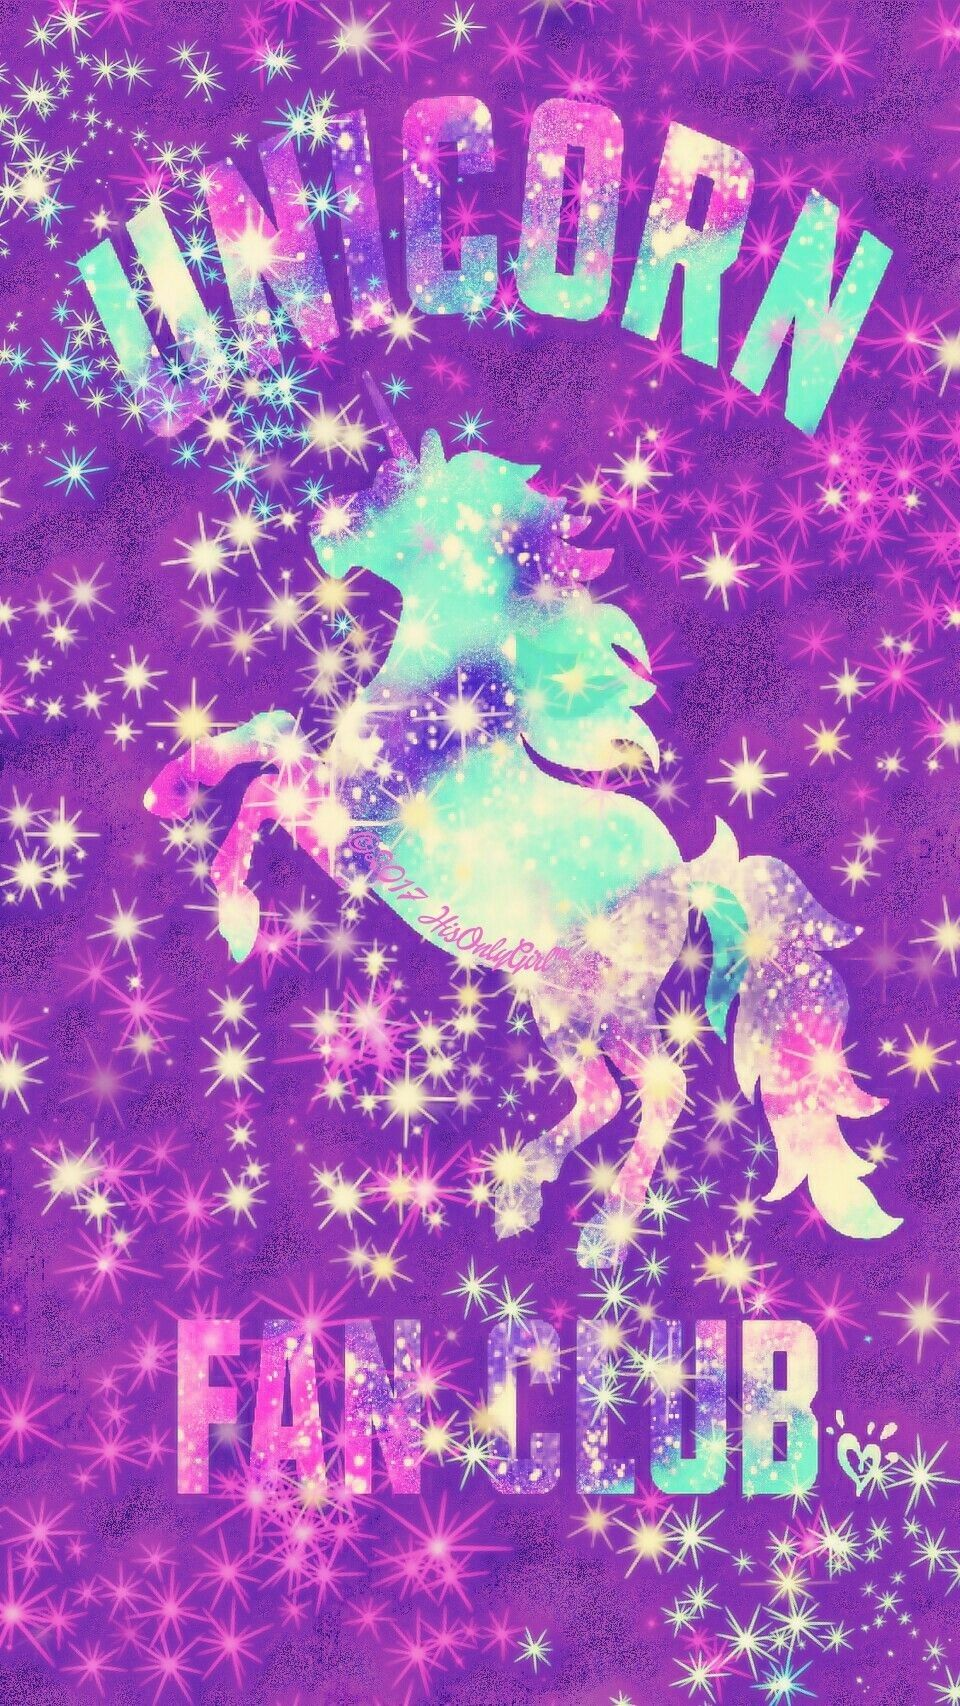 Glitter and Unicorns Wallpapers - Top